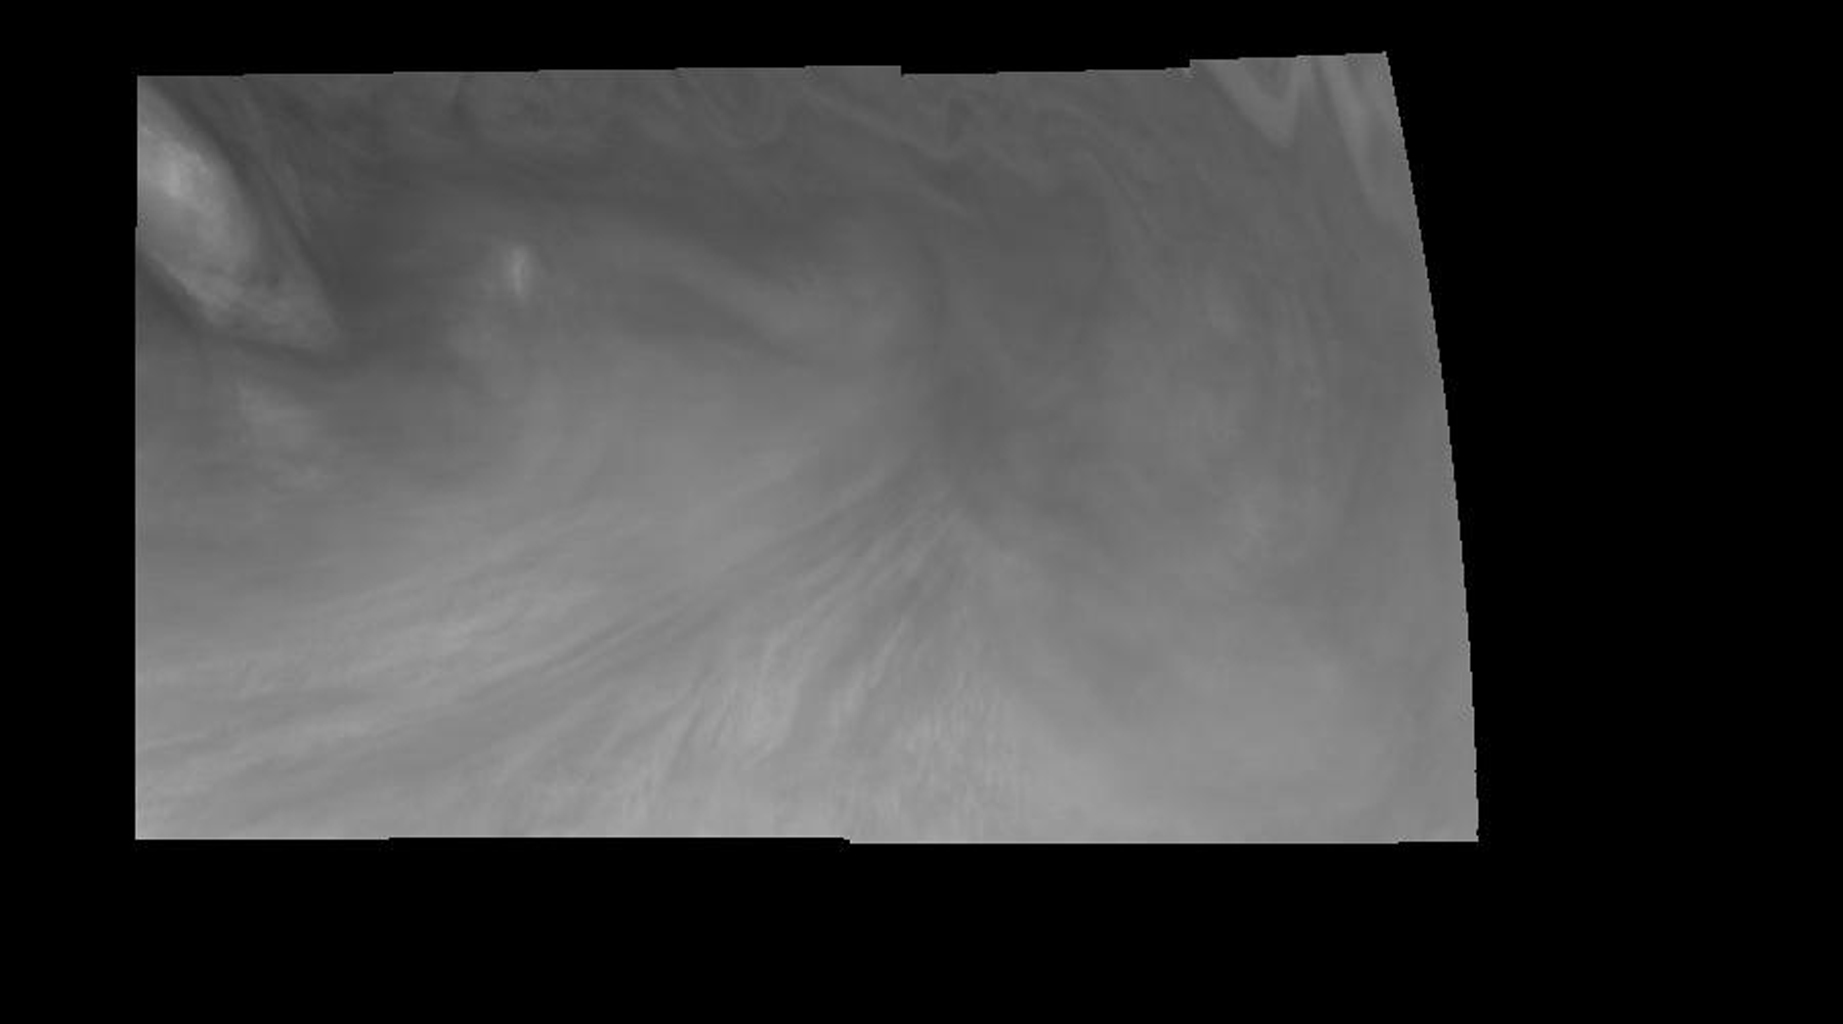 Mosaic of an equatorial 'hotspot' on Jupiter at 410 nanometers (nm). The mosaic covers an area of 34,000 kilometers by 11,000 kilometers. These images were taken on December 17, 1996 by the Solid State Imaging system aboard NASA's Galileo spacecraft.